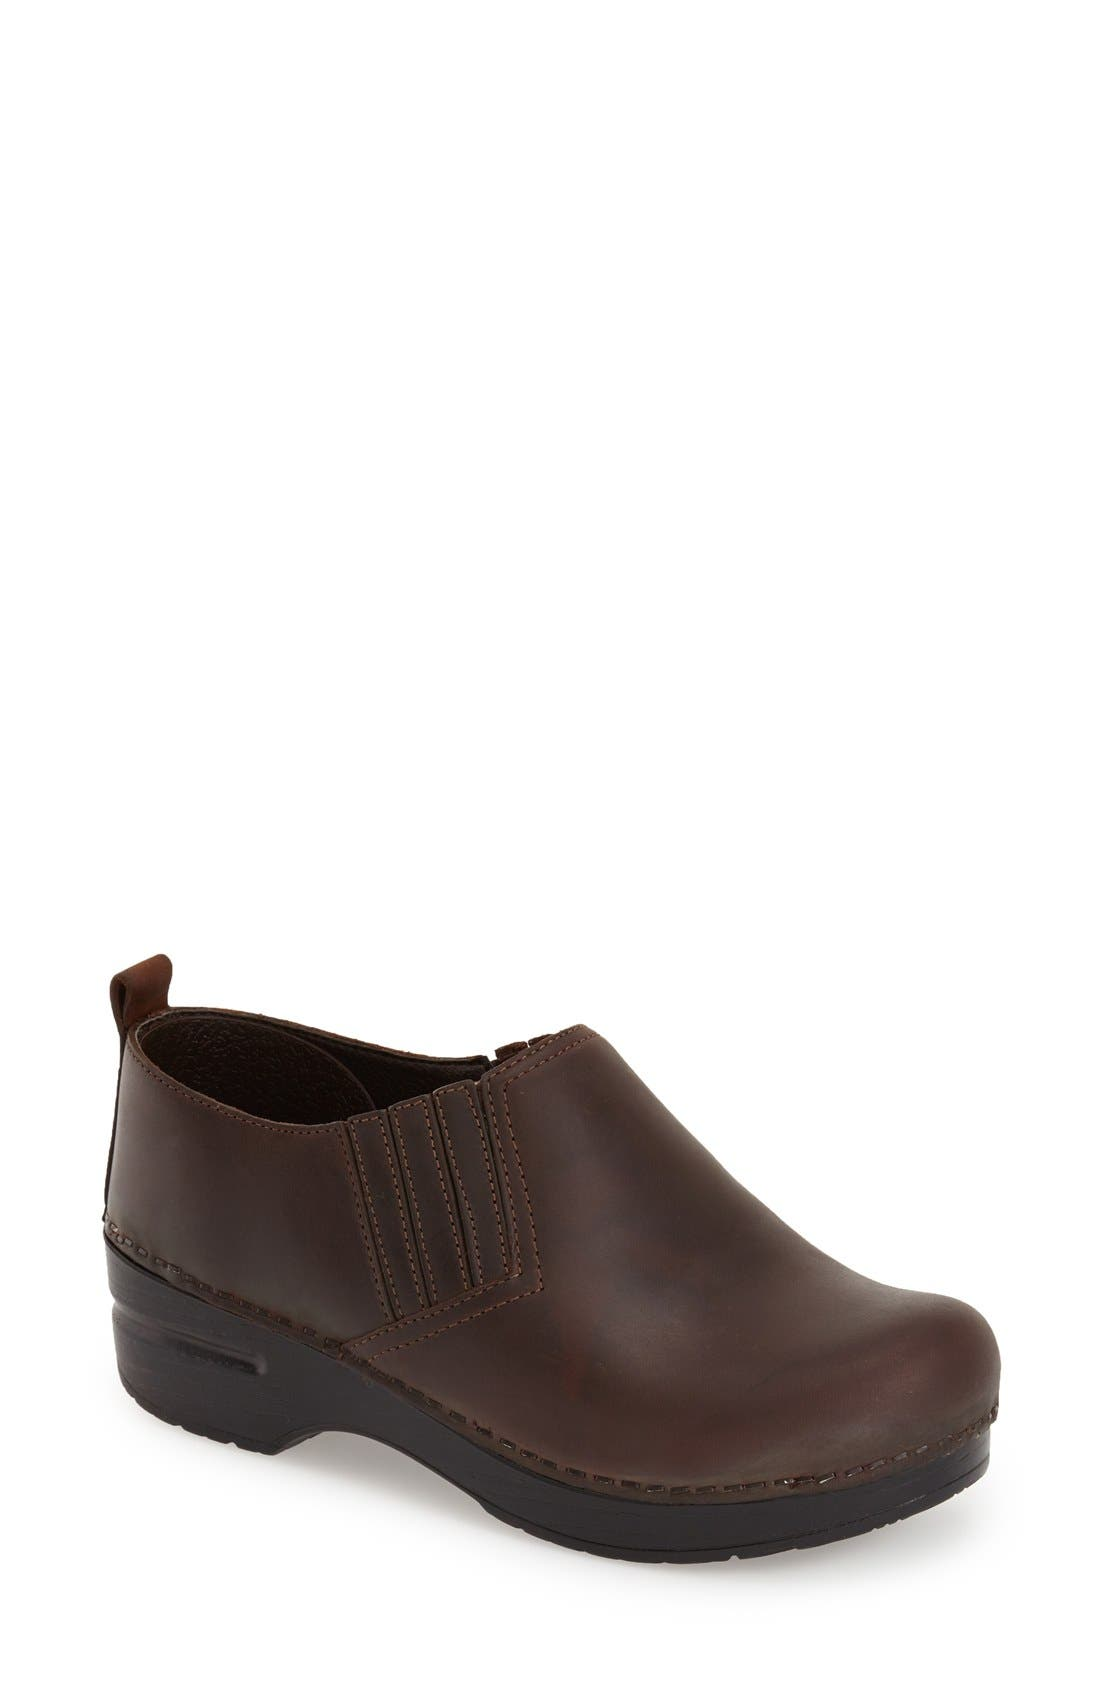 'Piet' Clog,                         Main,                         color, ANTIQUE BROWN OILED LEATHER